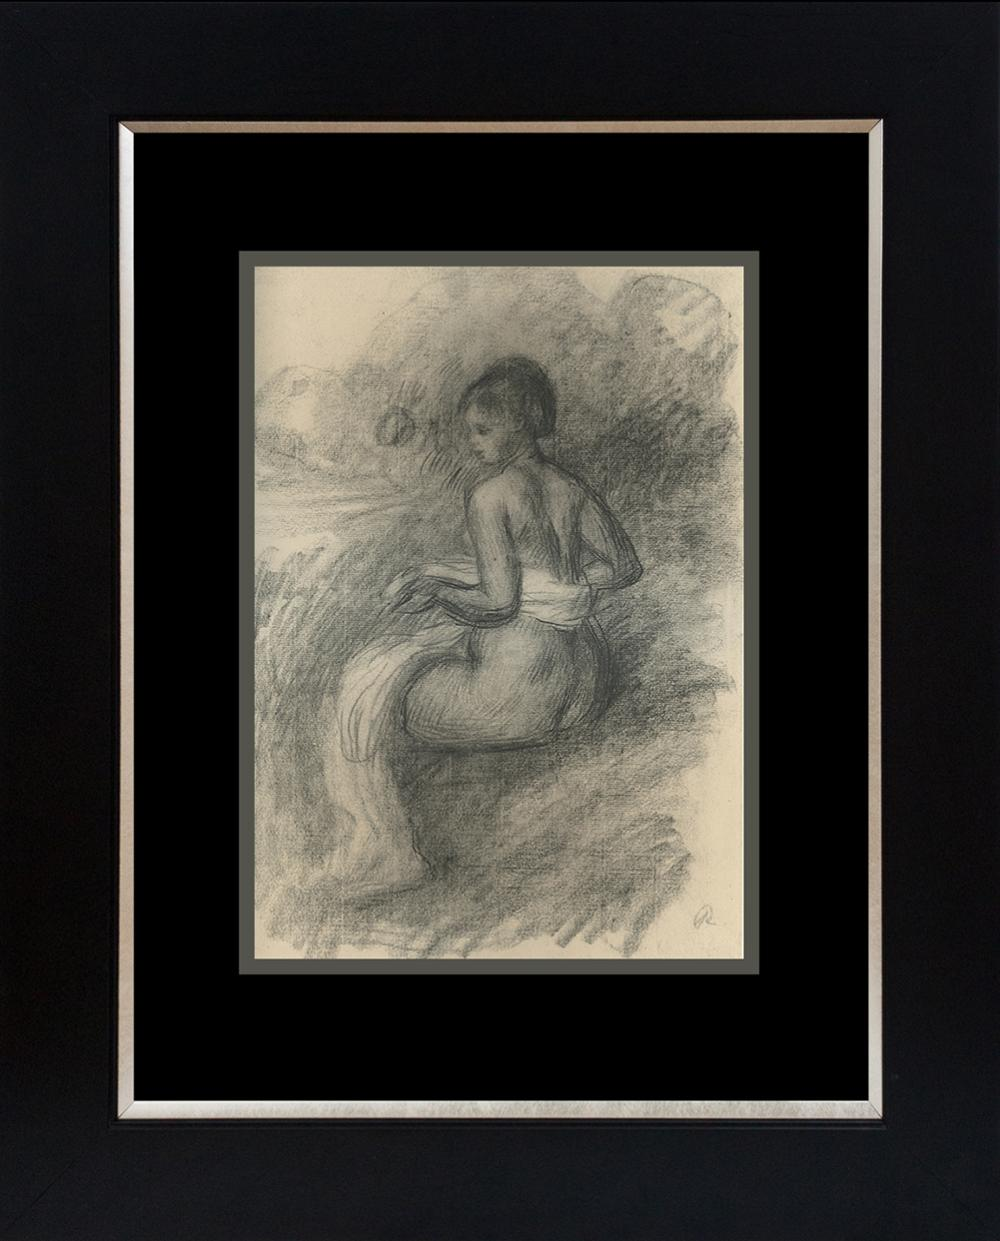 Lot 4211: Renoir color plate lithograph over 60 years ago